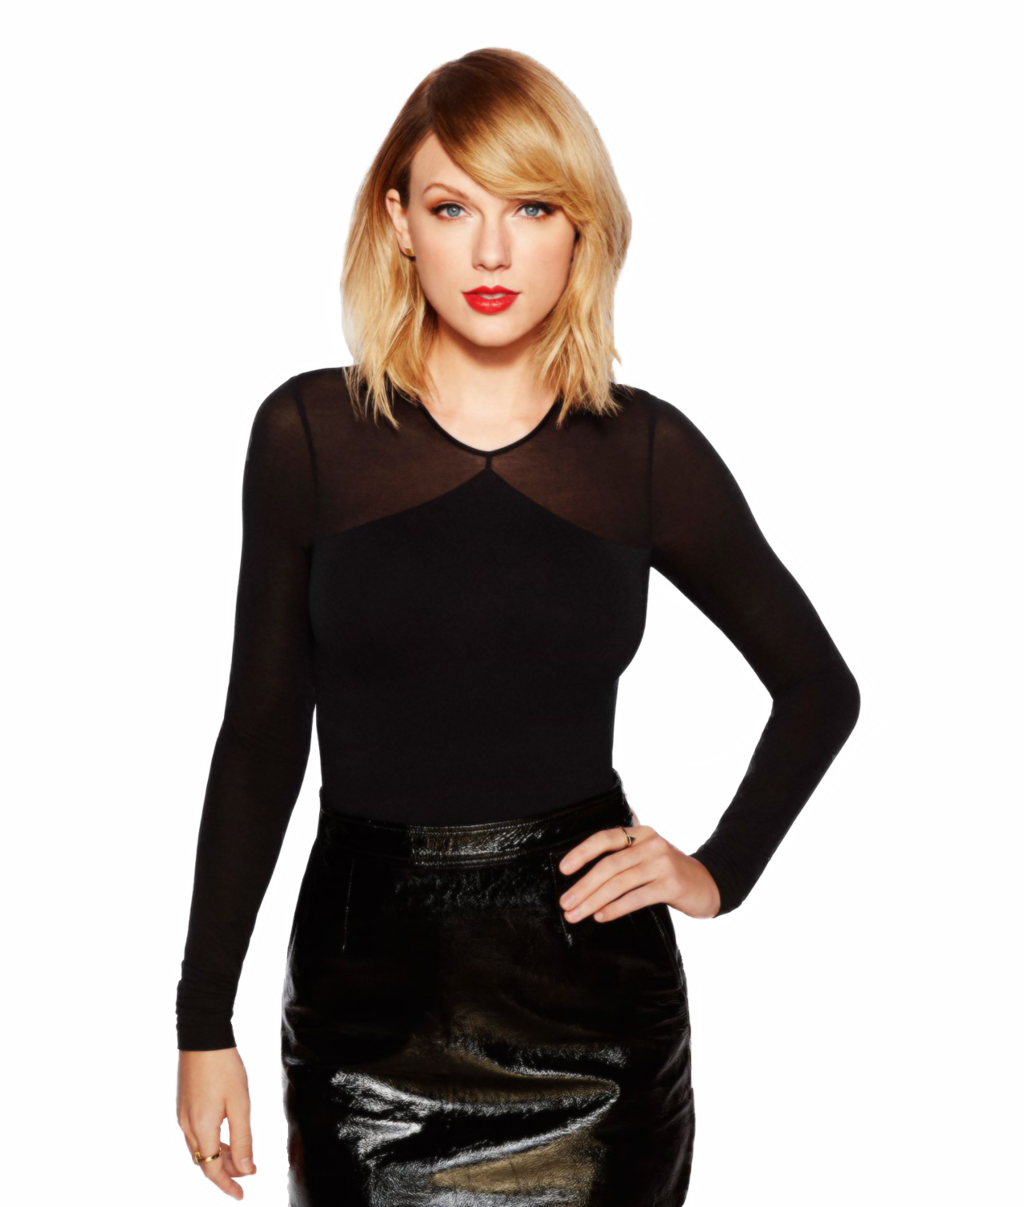 Taylor Swift Png by XxPrettyx